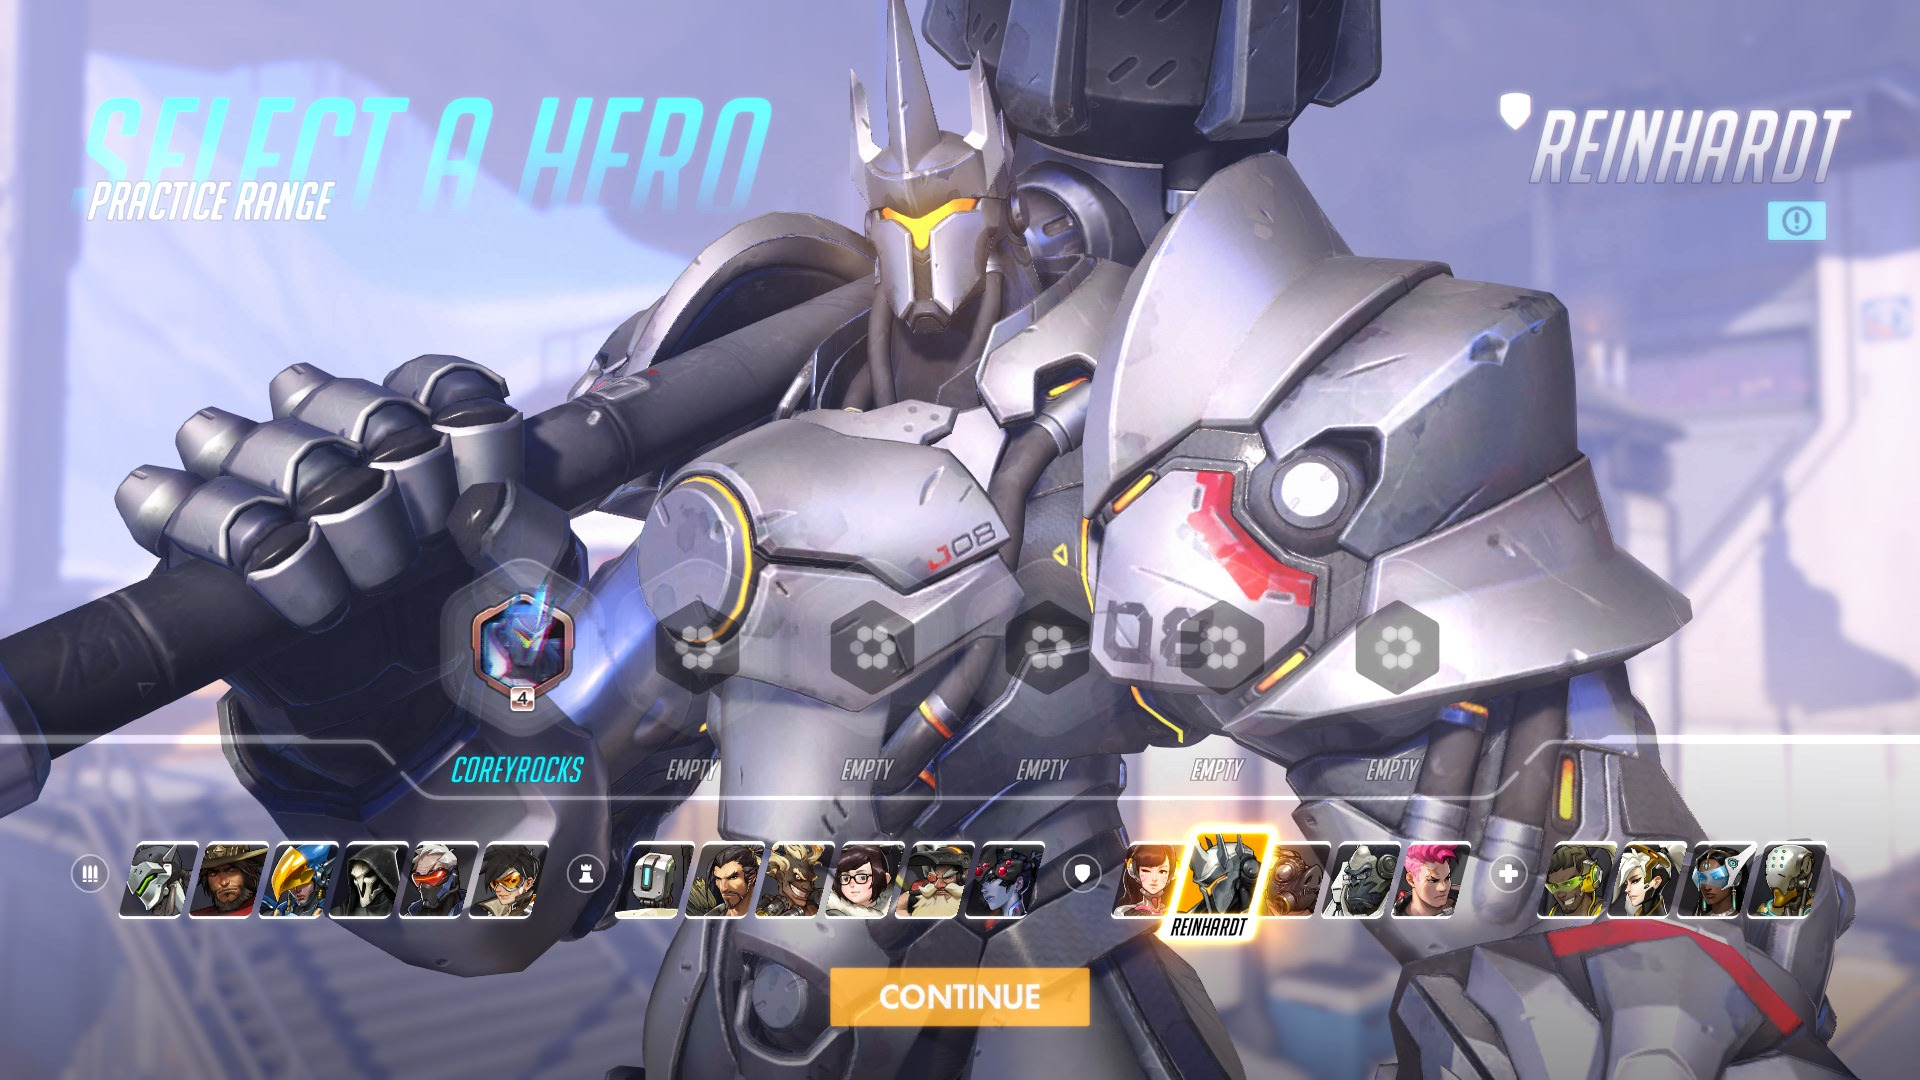 Reinhardt Overwatch Hero